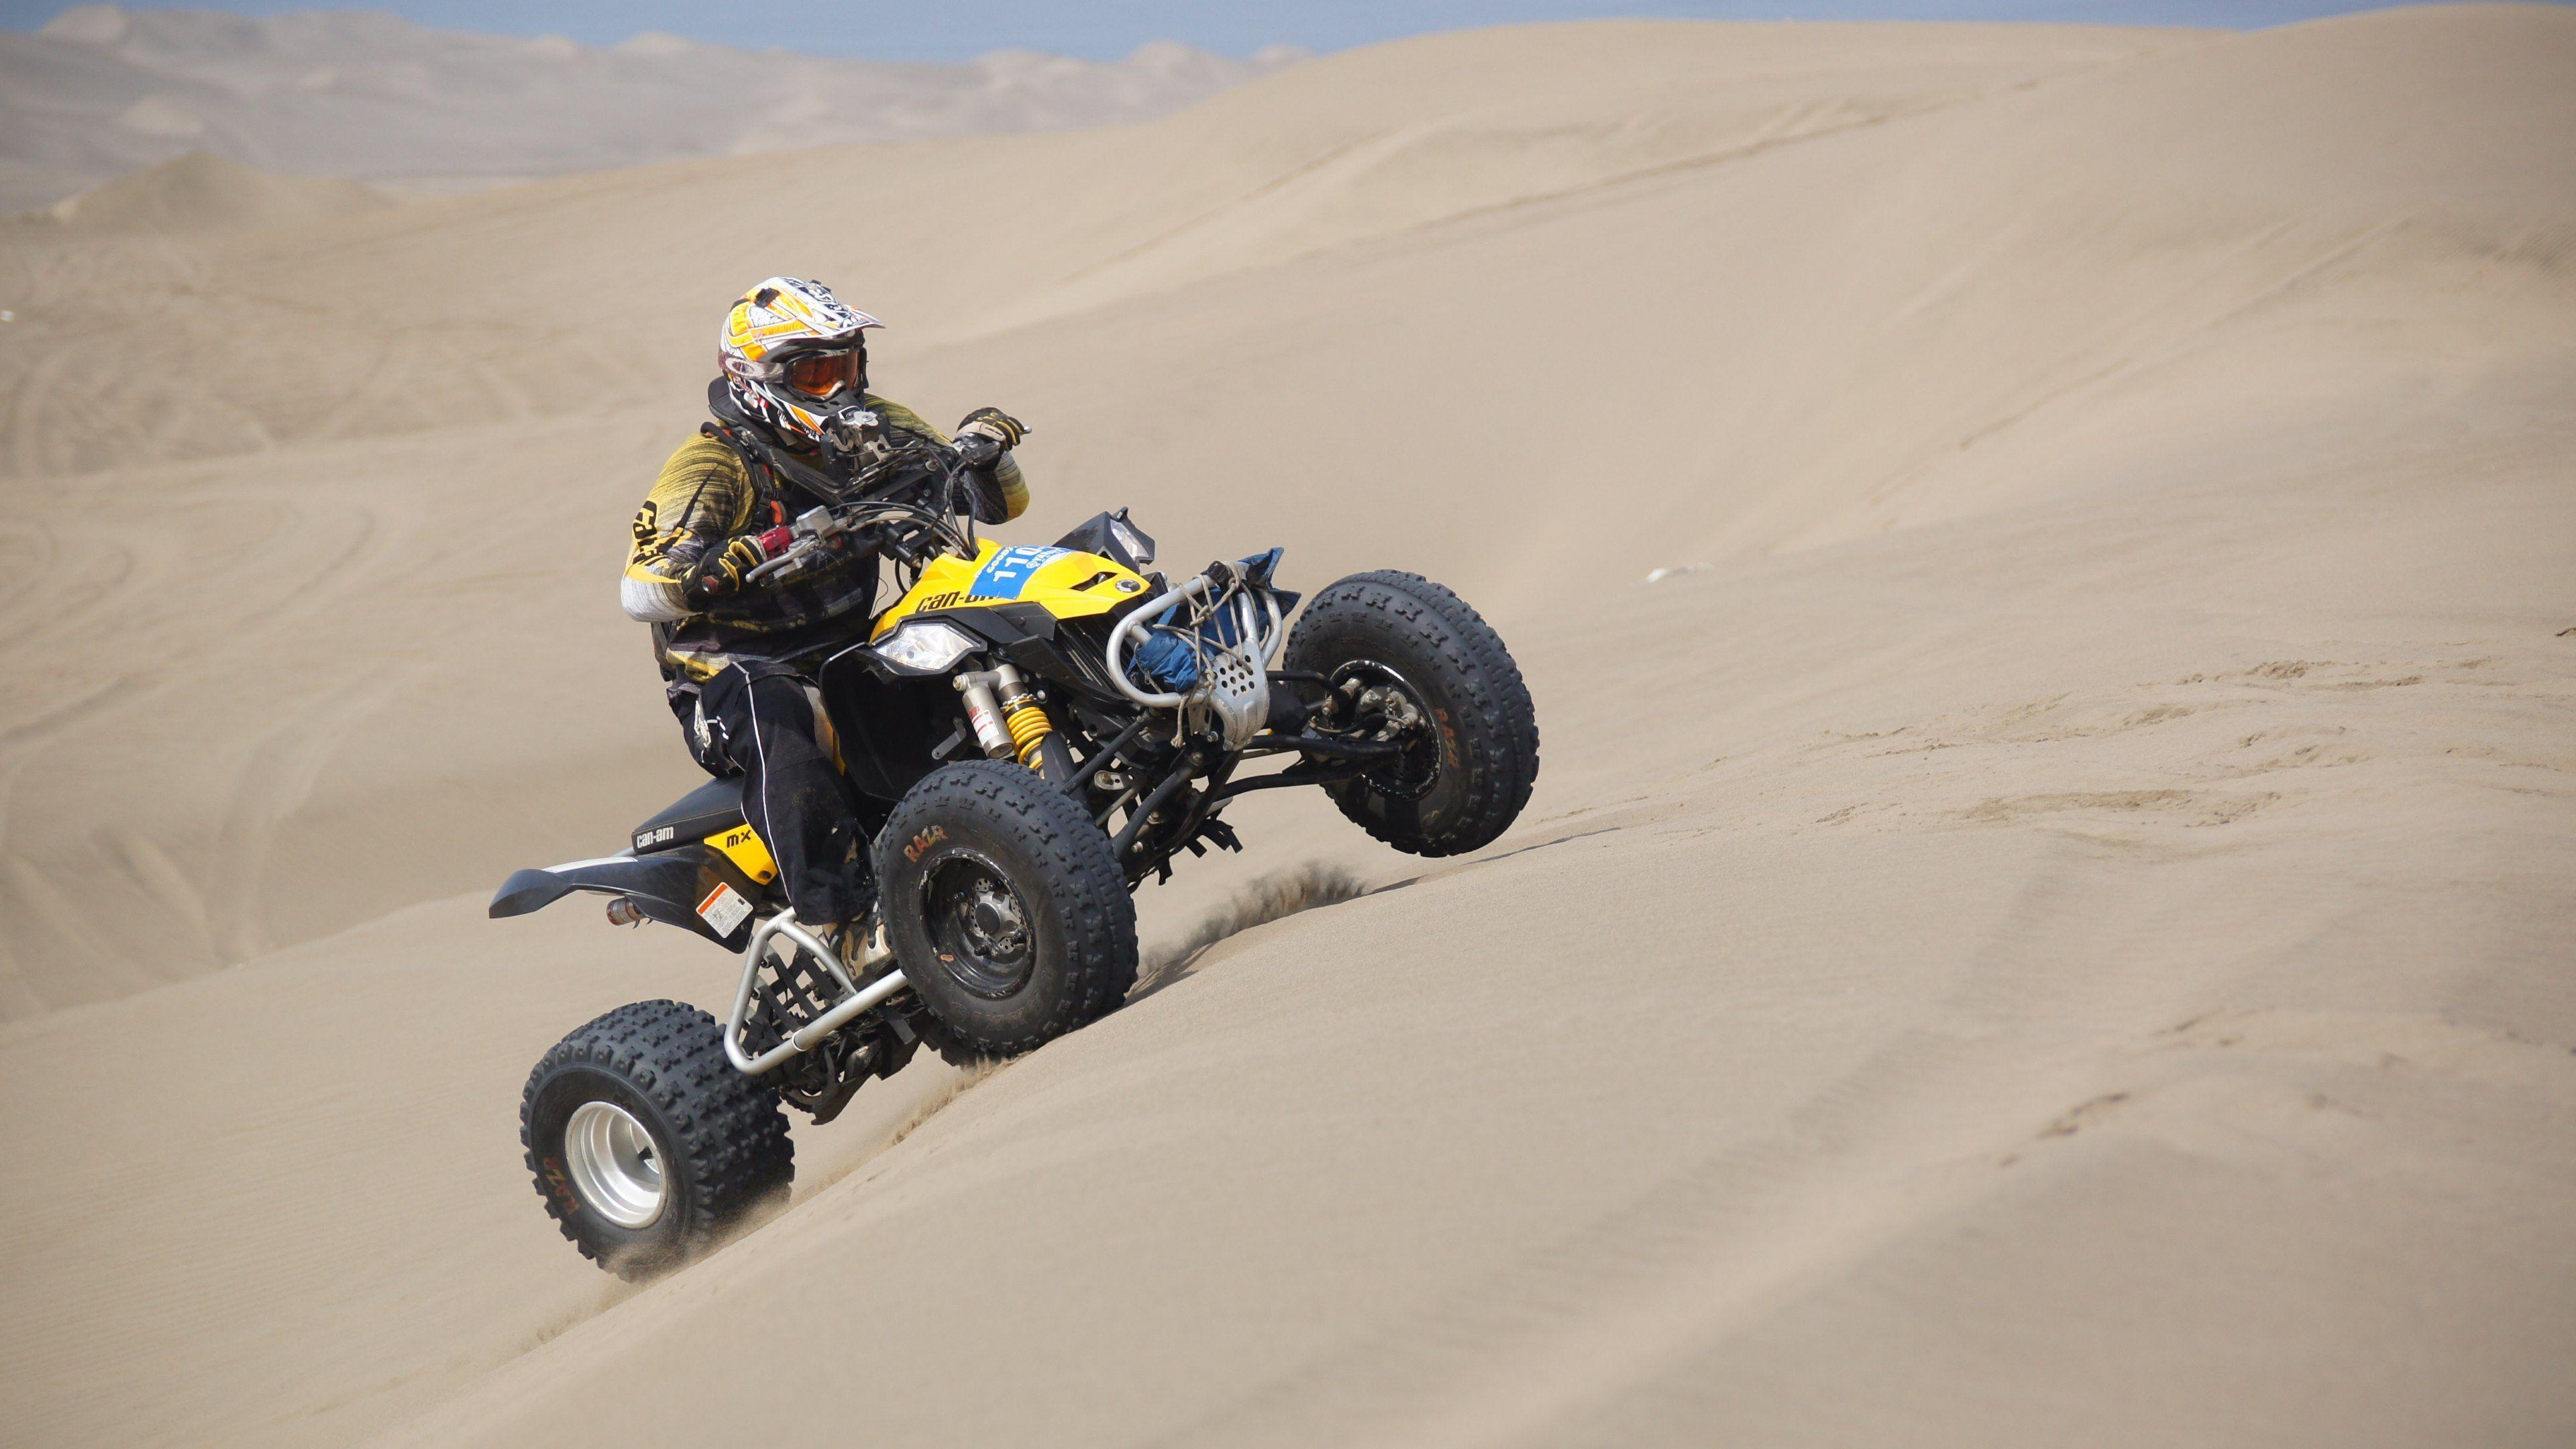 11 ATV HD Wallpapers | Backgrounds - Wallpaper Abyss